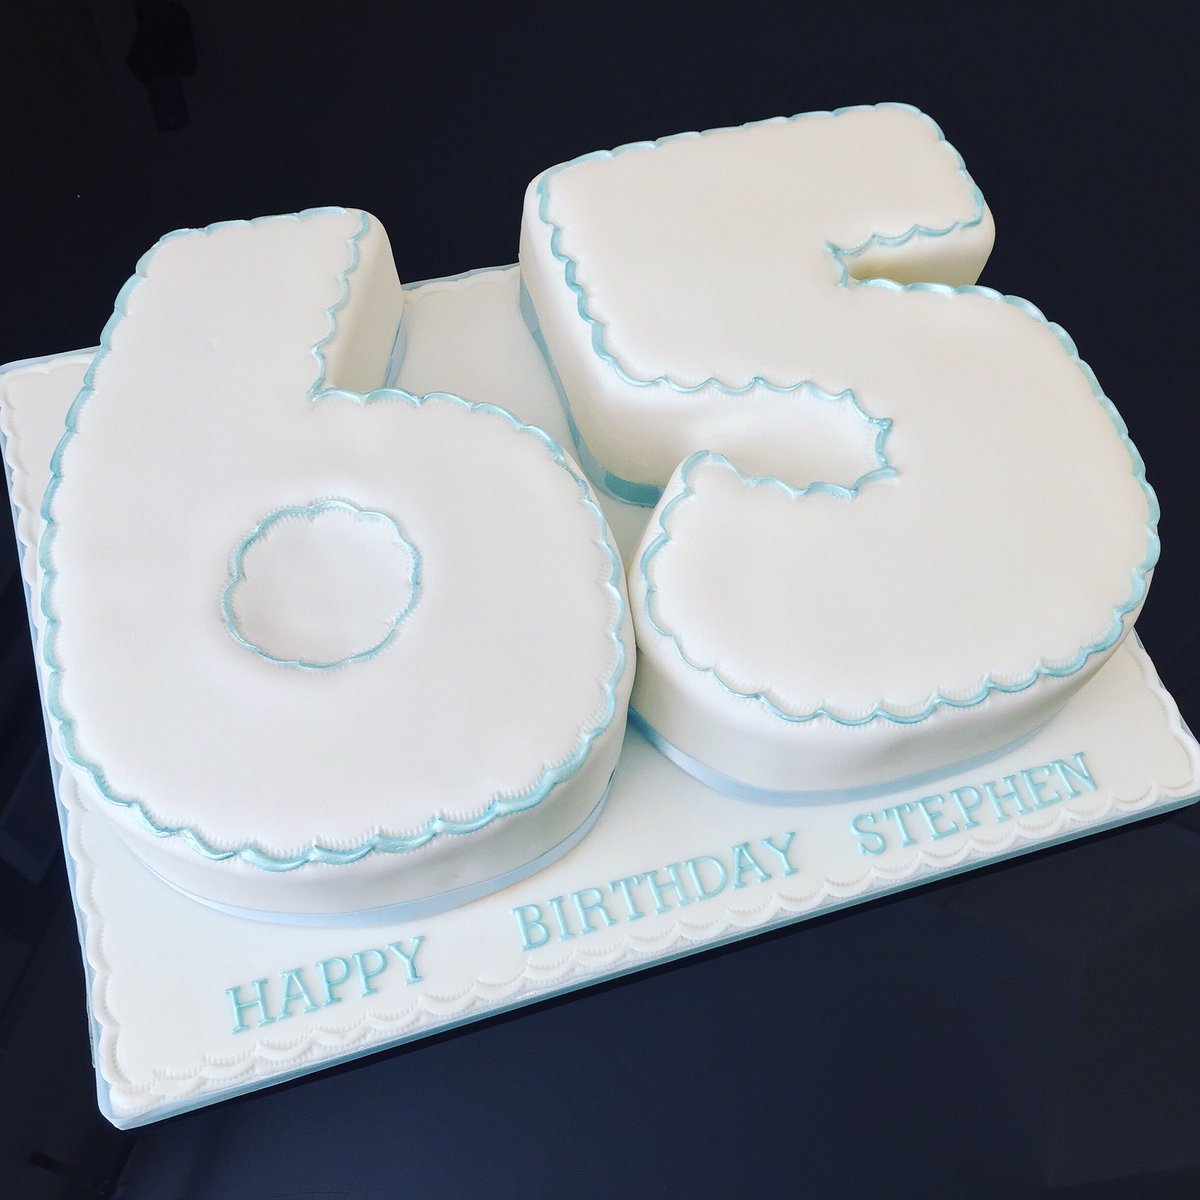 Magnificent Marias Cake Boutique A Twitteren 65Th Birthday Cake Number 6 Funny Birthday Cards Online Inifofree Goldxyz